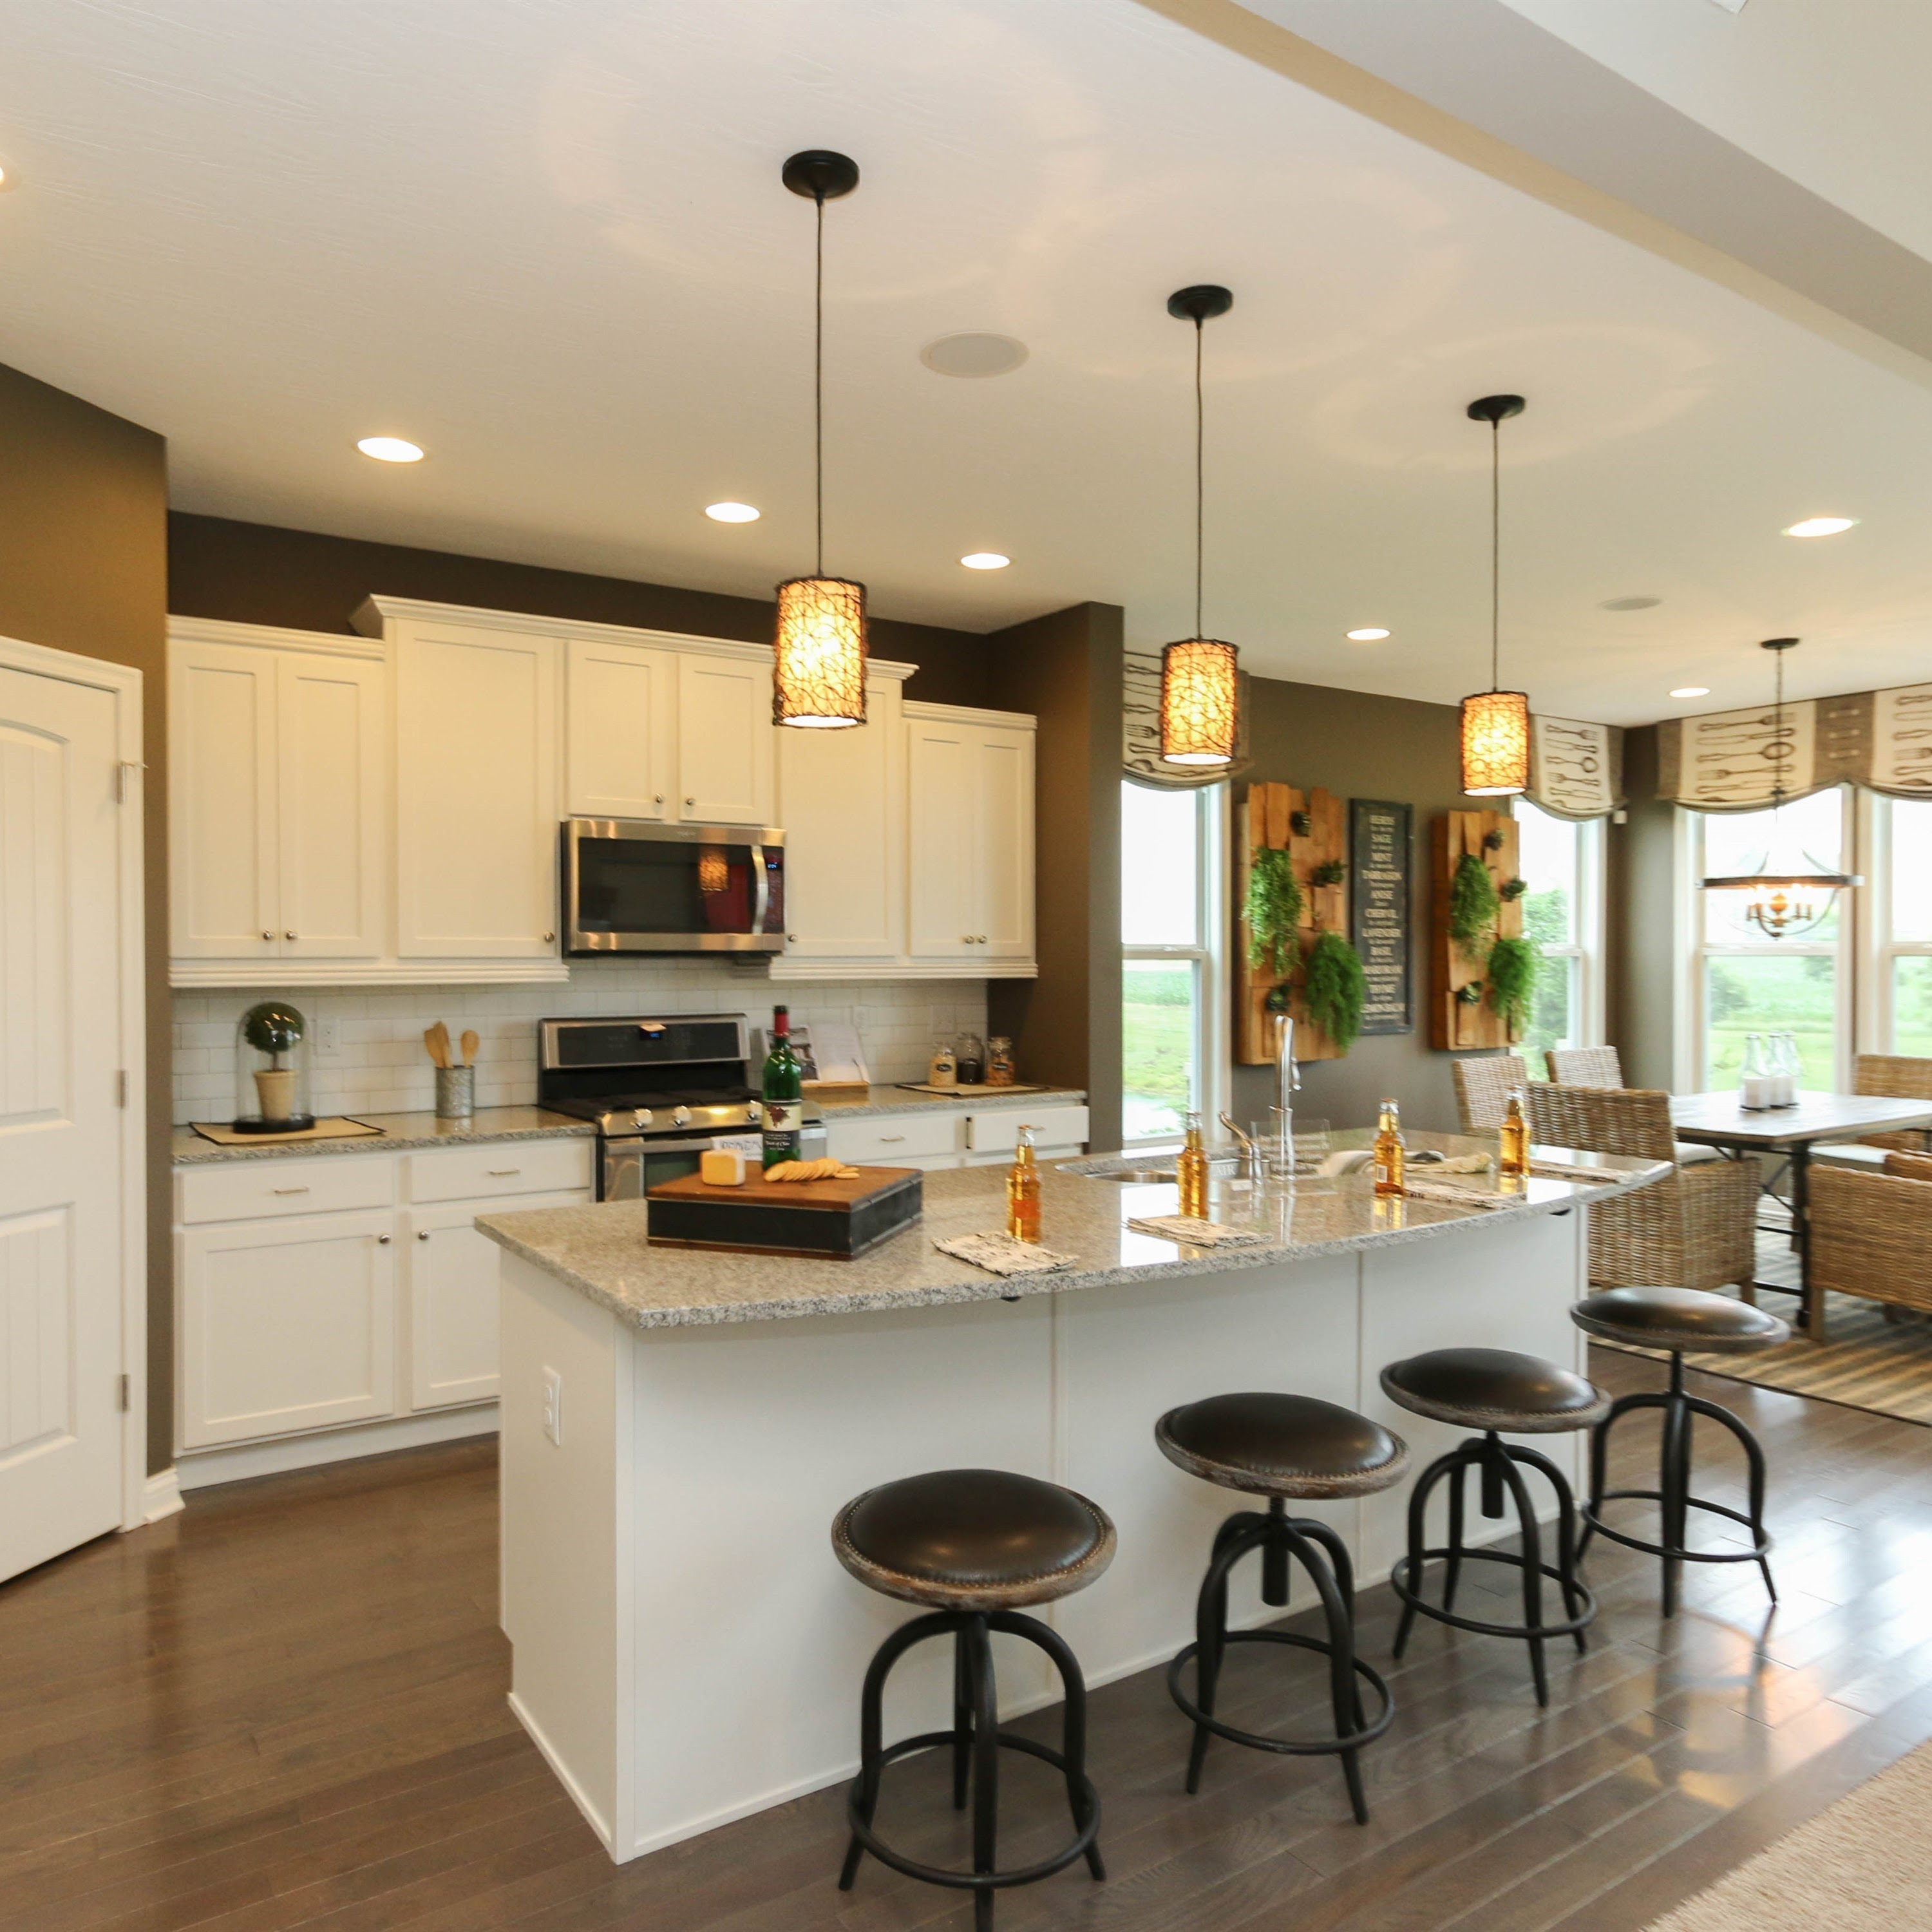 The Reserve at Liberty Park by Fischer Homes - Braselton, GA 30517 - (404)620-6814 | ShowMeLocal.com